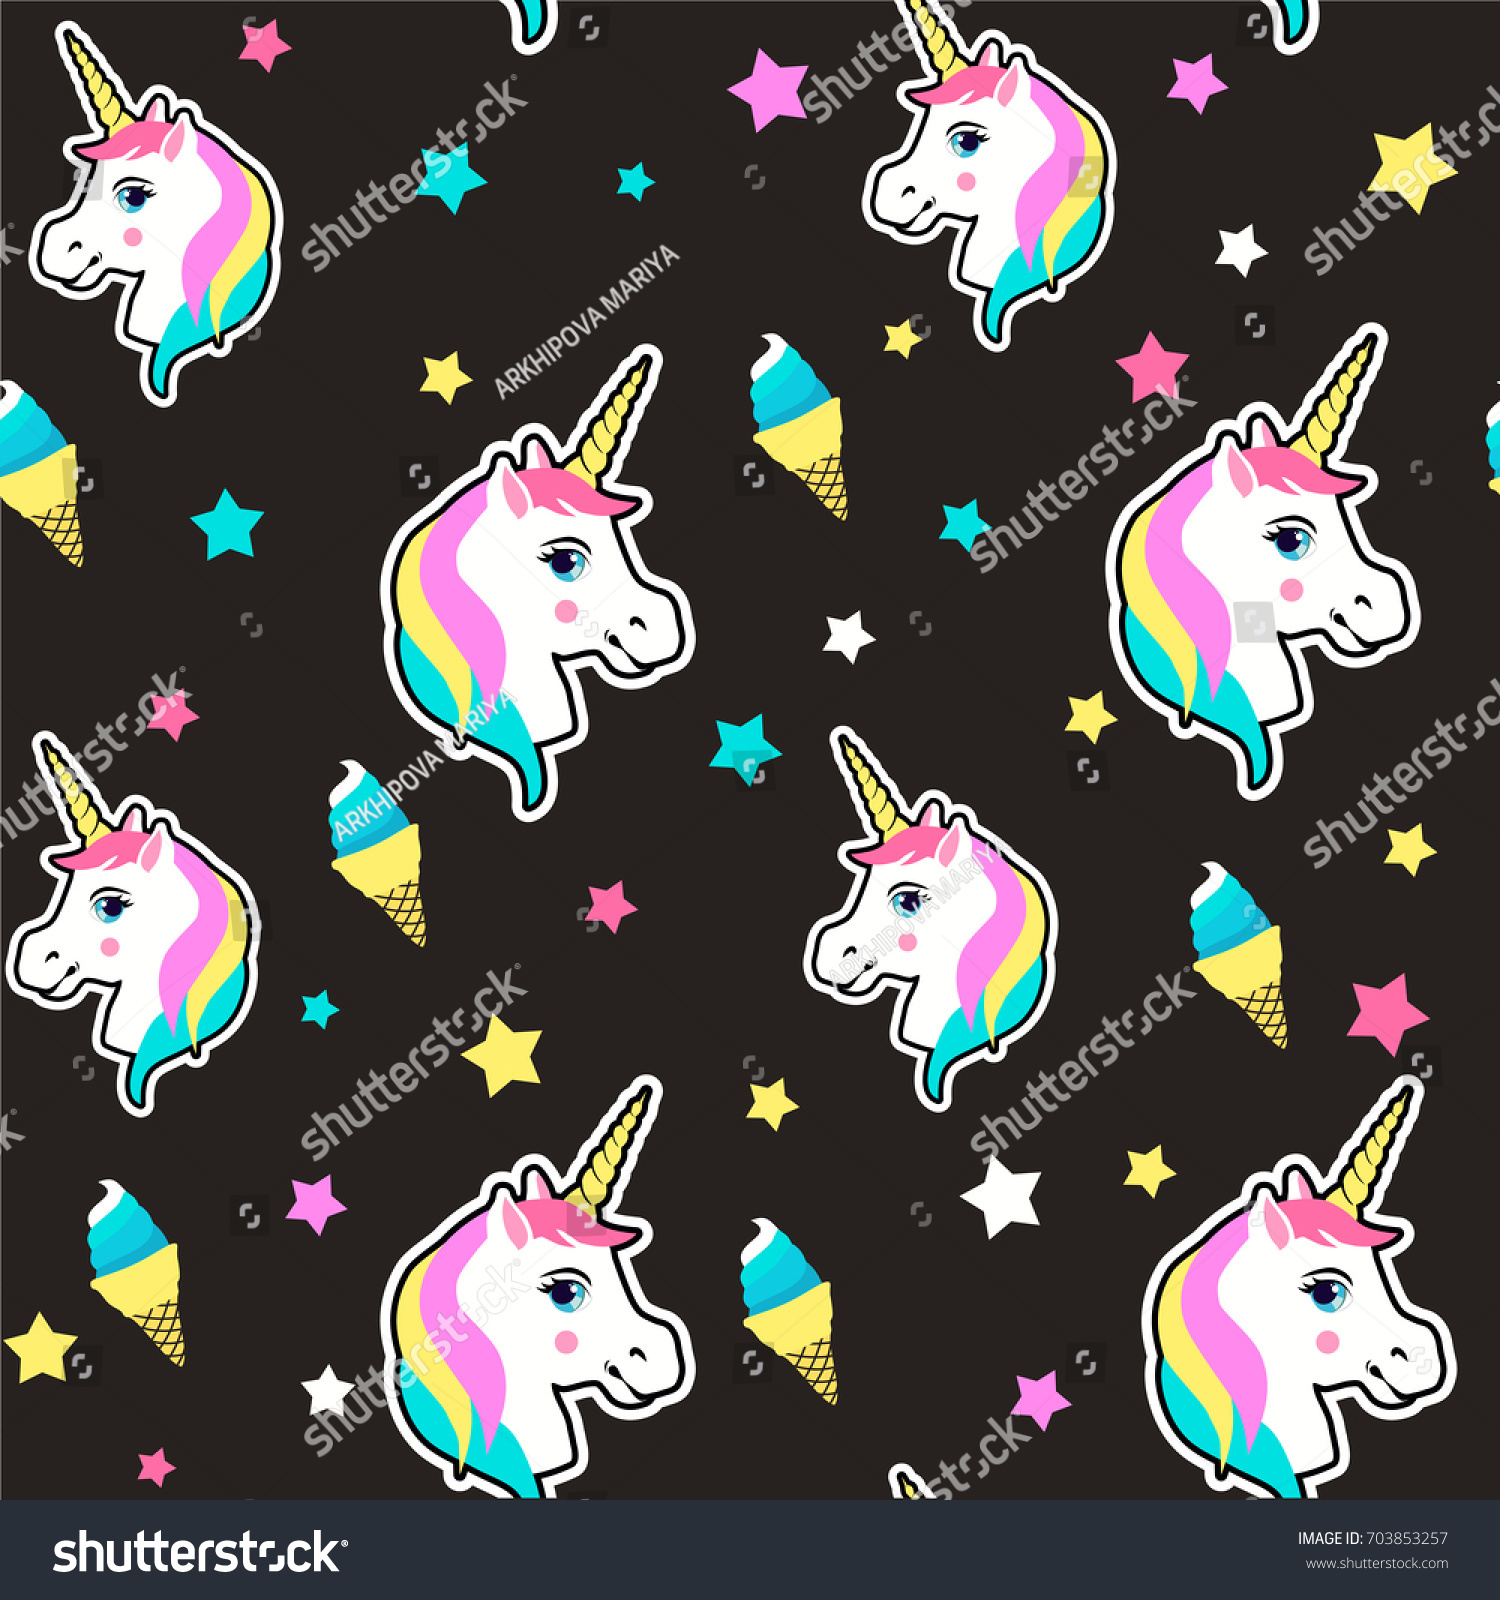 Cute Colorful Ice Cream Seamless Pattern Background: Colorful Cute Seamless Pattern Unicorn Star Stock Vector